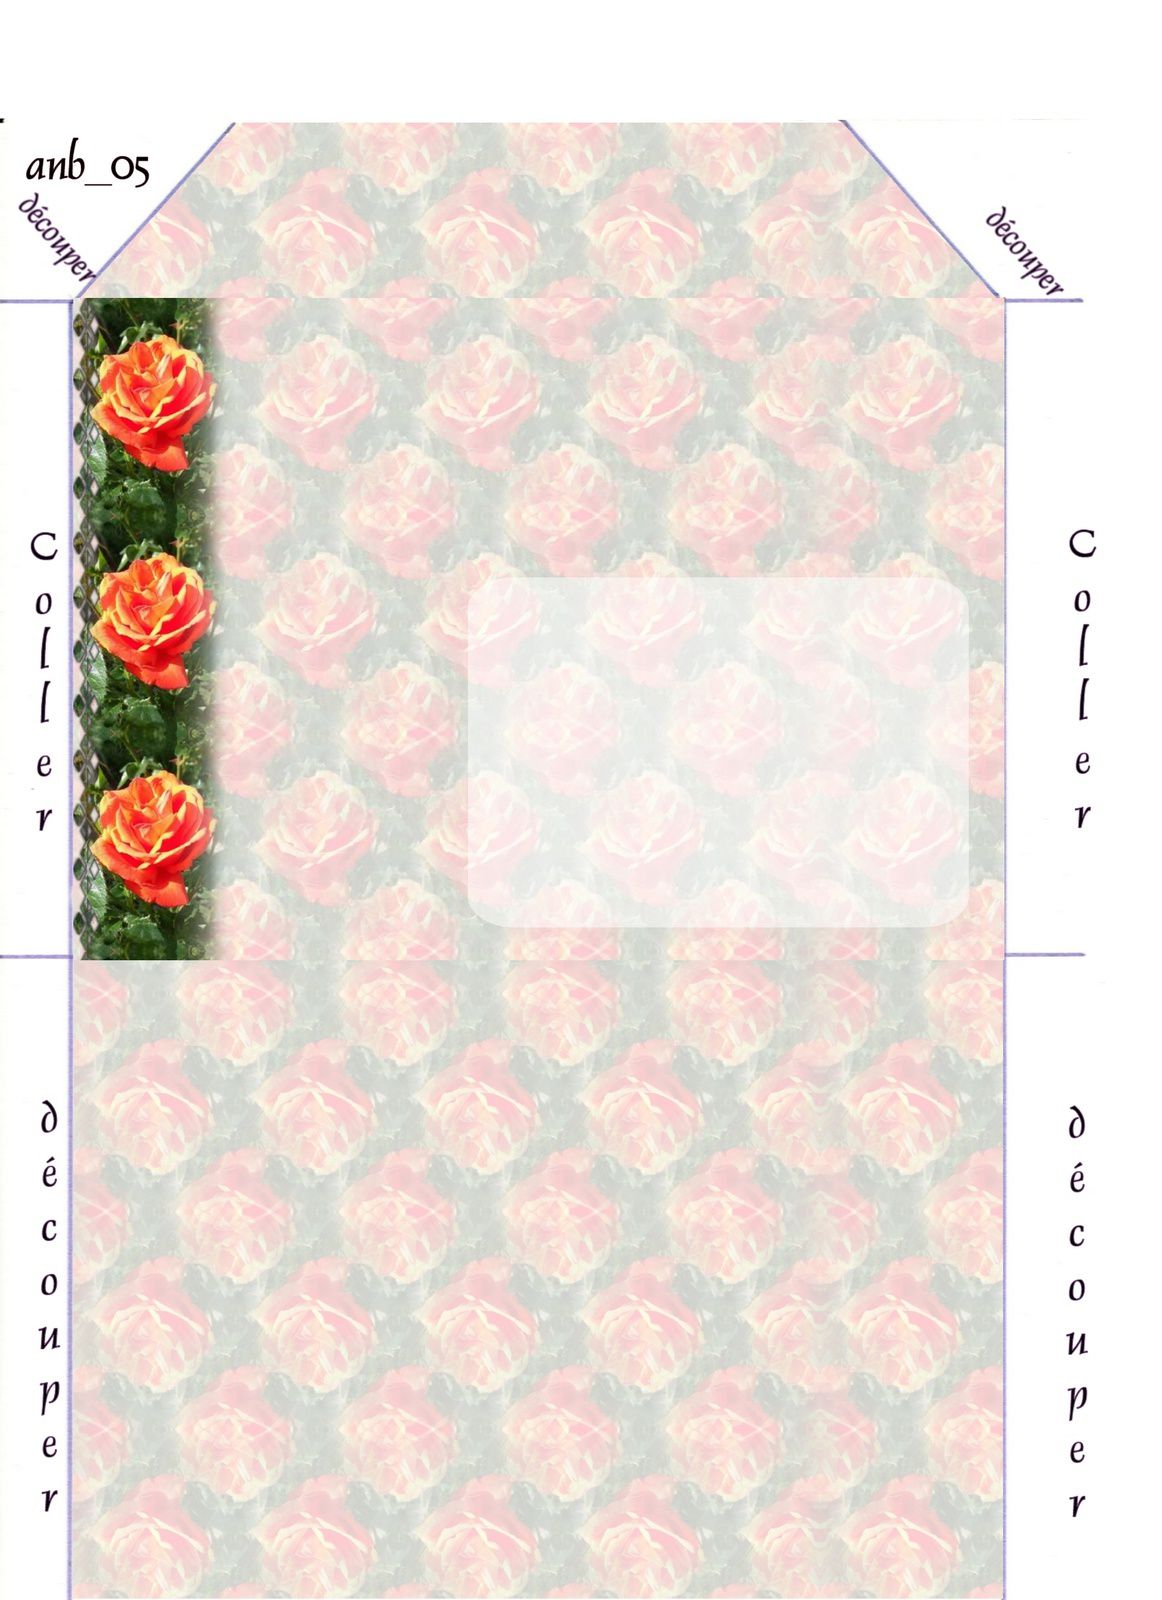 Rose orange Incredimail &amp&#x3B; Papier A4 h l &amp&#x3B; outlook &amp&#x3B; enveloppe &amp&#x3B; 2 cartes A5 &amp&#x3B; signets 3 langues    rose_orange_daisy_gedc1318_00